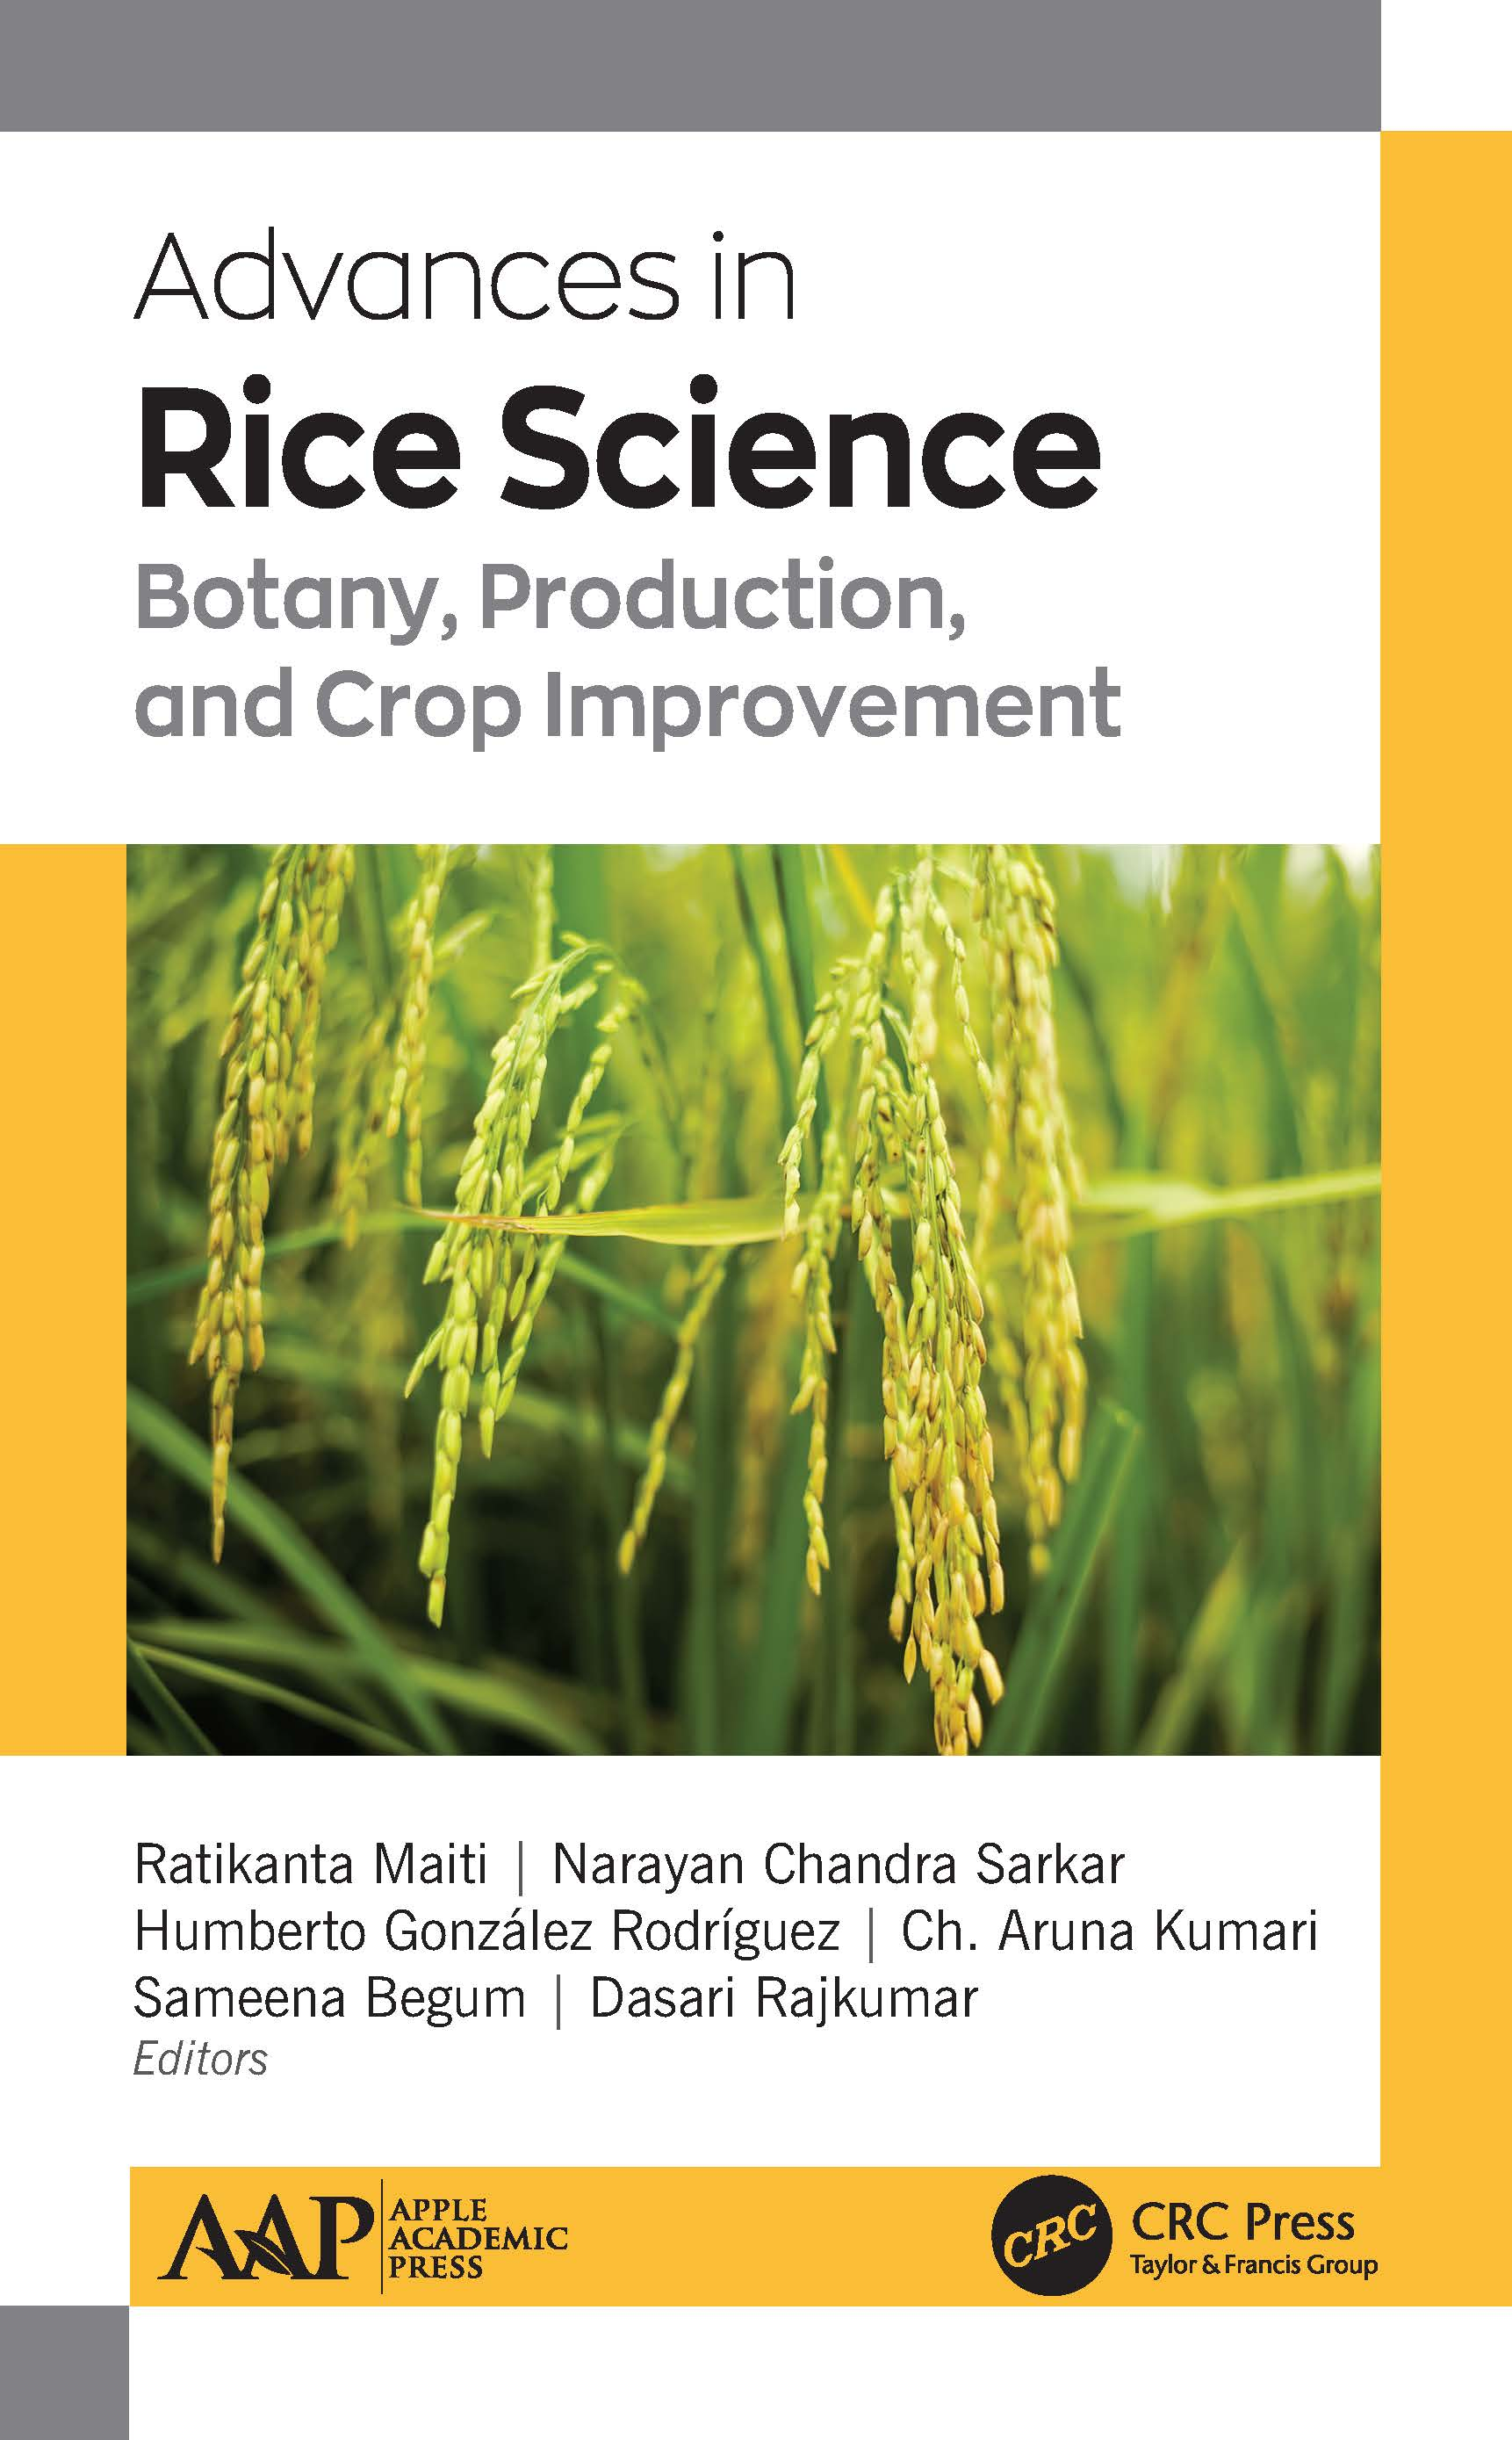 Advances in Rice Science: Botany, Production, and Crop Improvement book cover